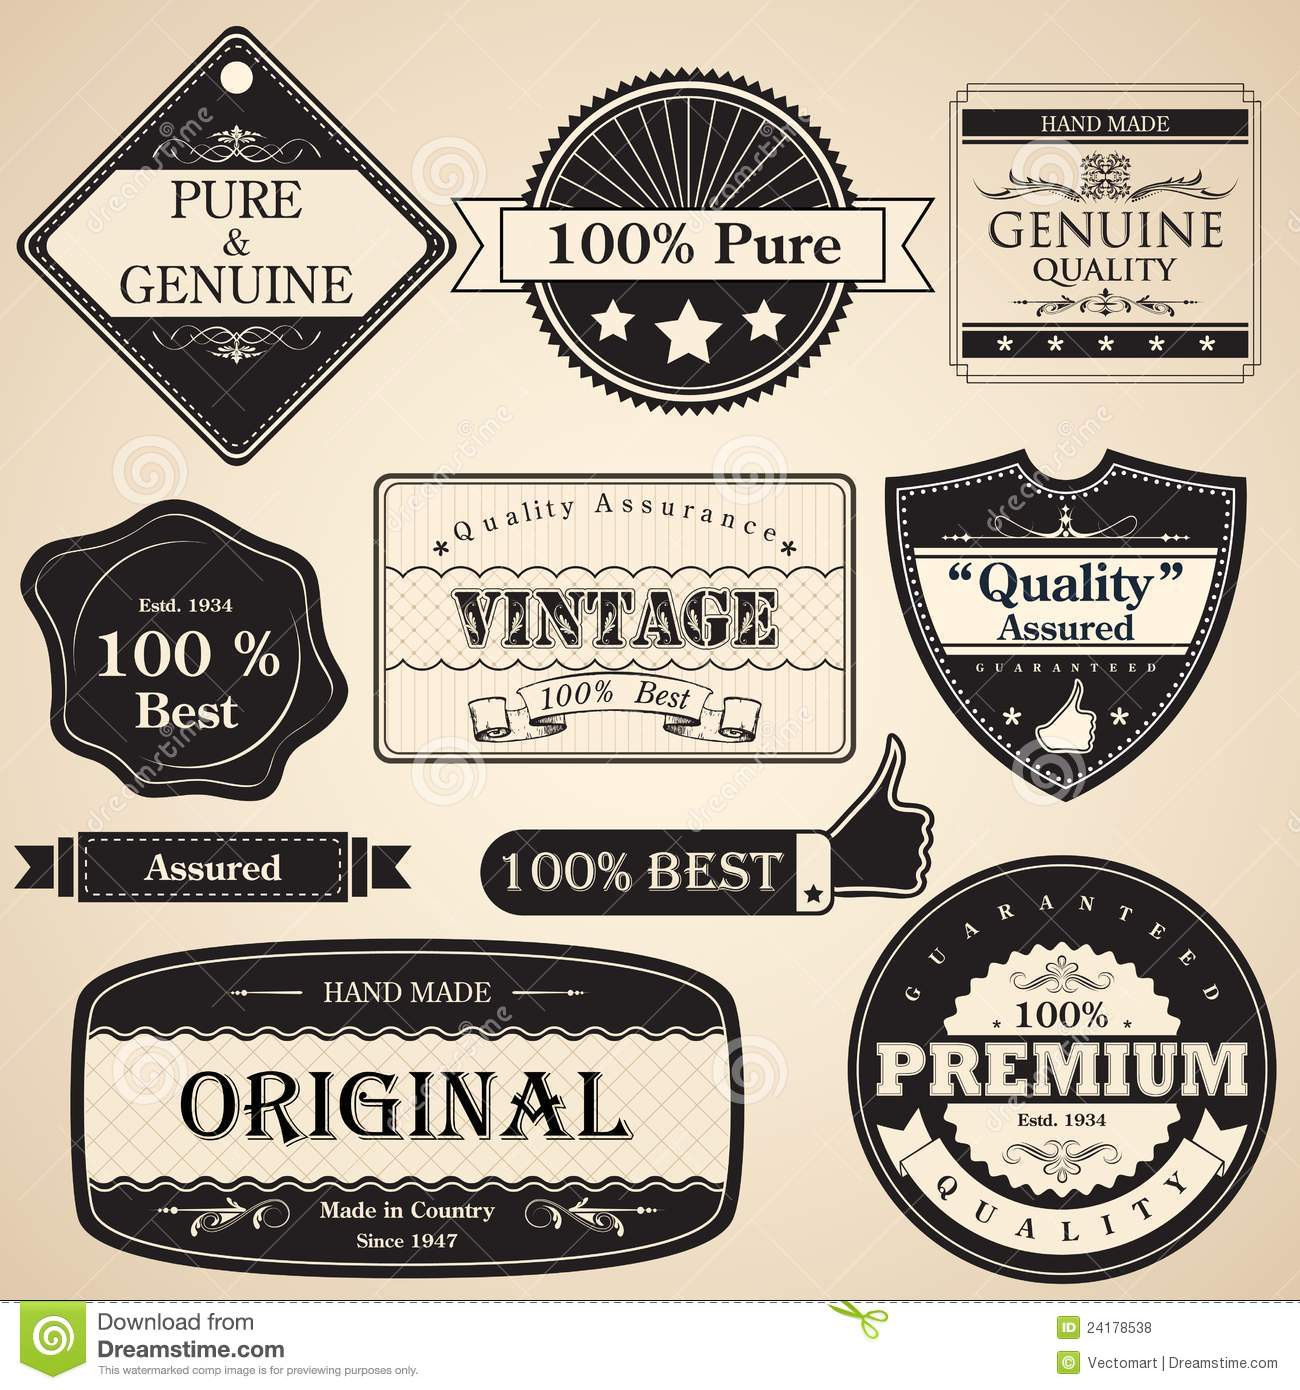 Vintage Premium Quality Label Royalty Free Stock Photos - Image ...